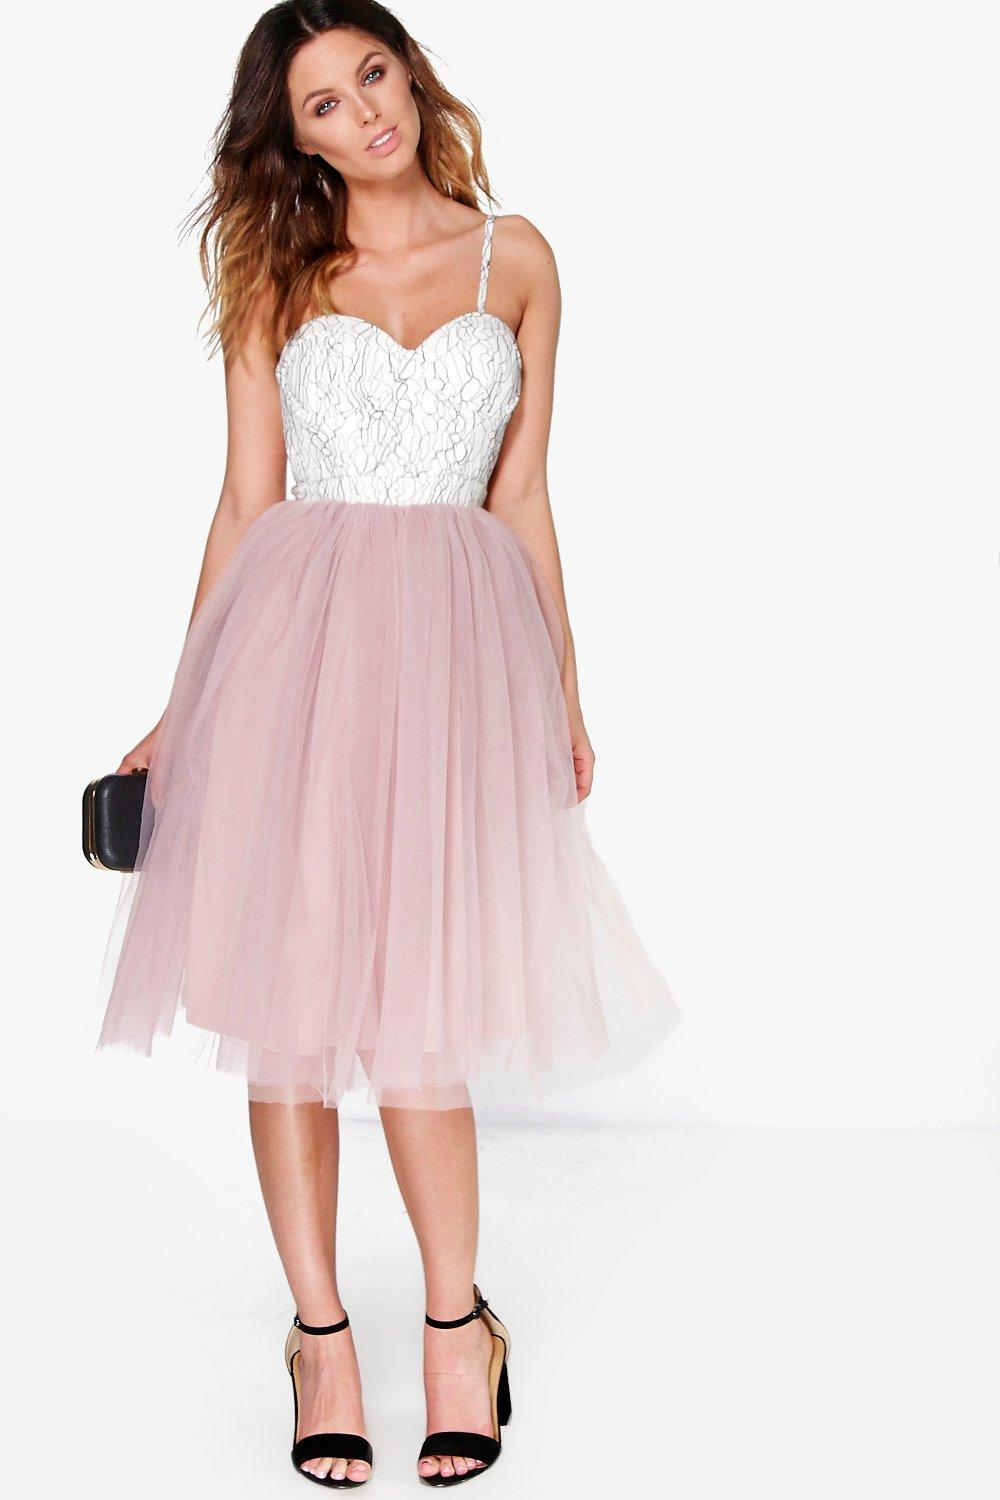 A Tulle Dress